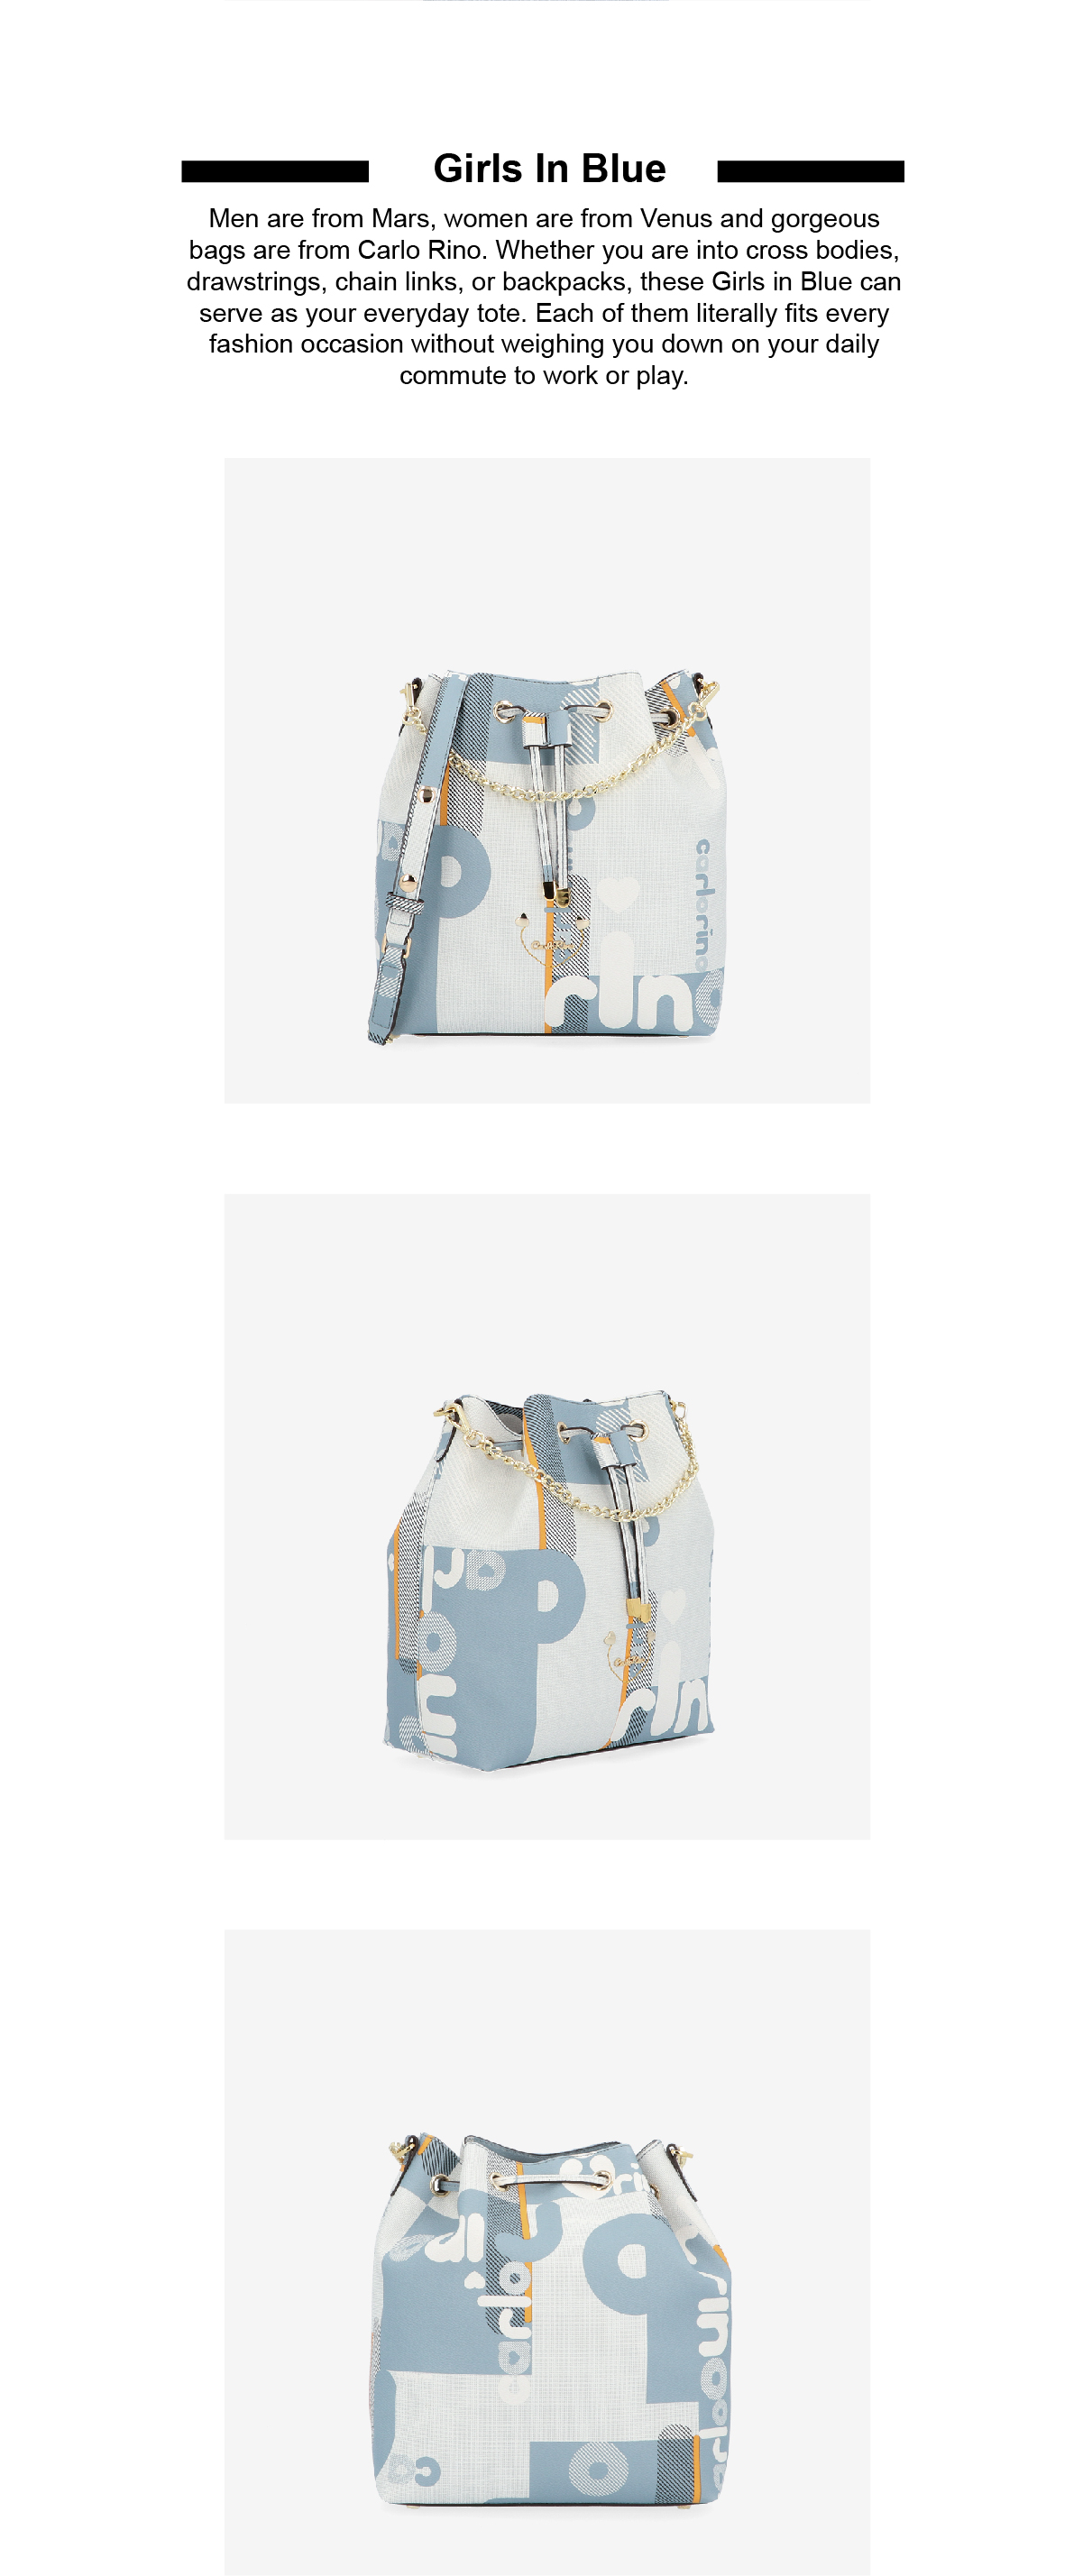 0304806H 003 23 02 - Girls In Drawstring Cross Body